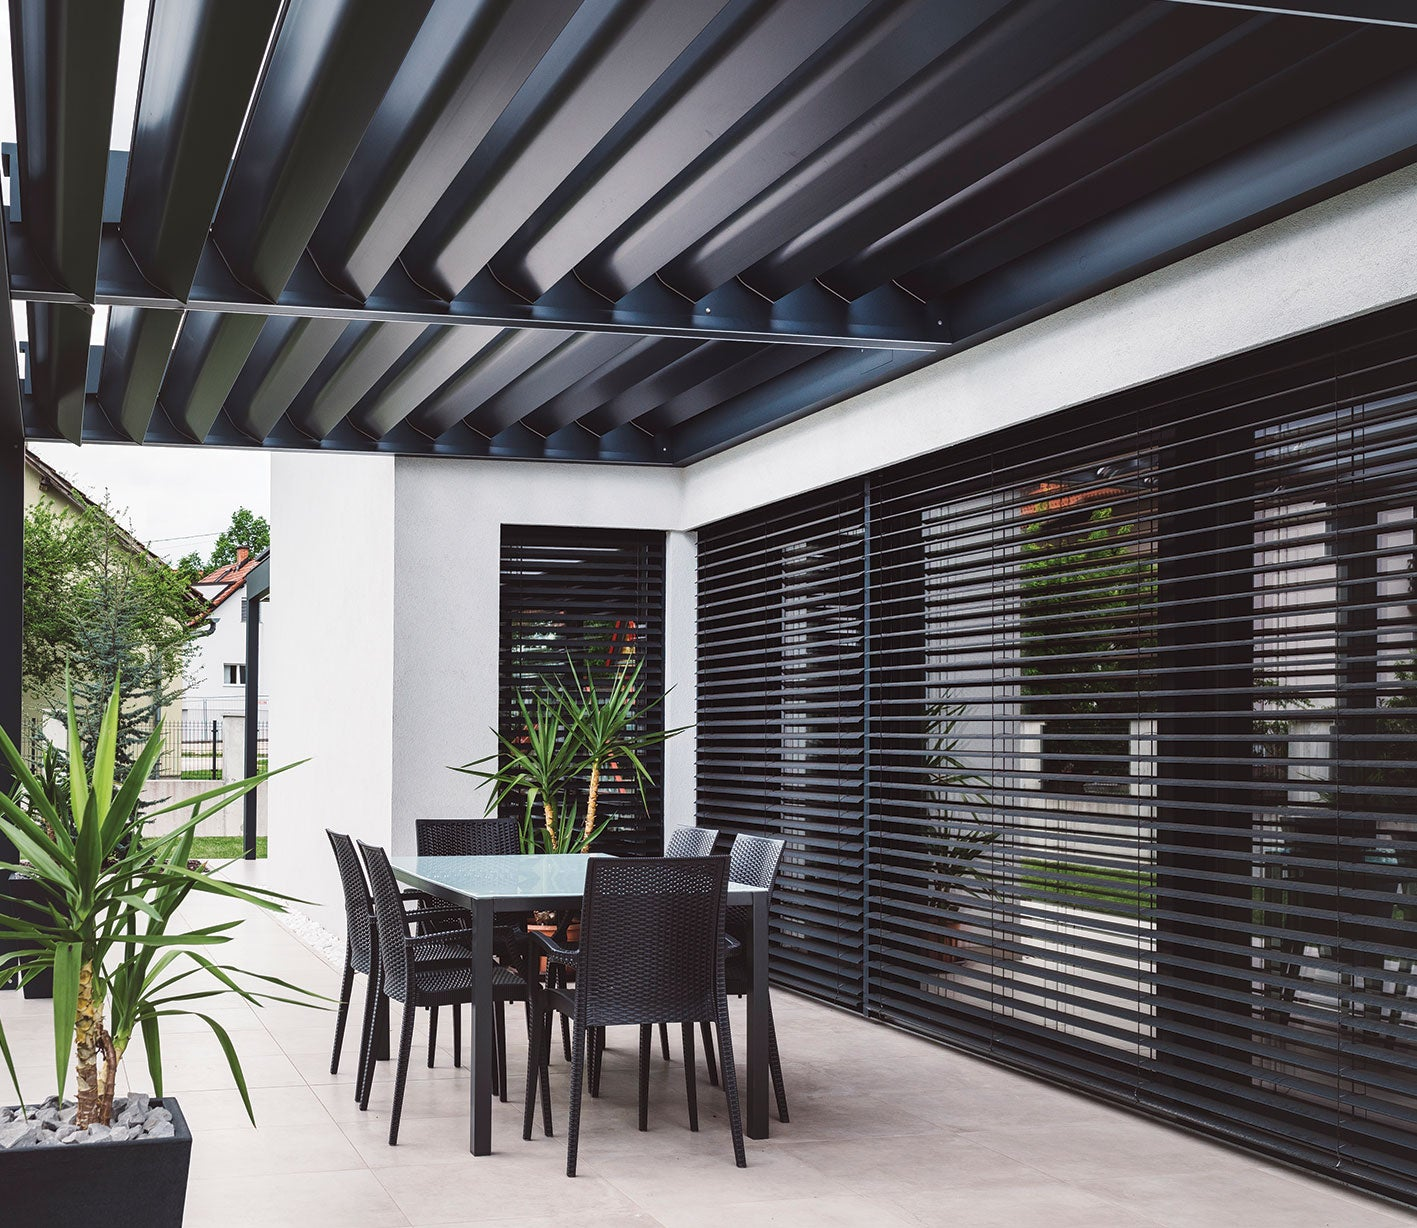 A residential house with a black veranda that has been coated with PPGs ENVIROCRON® PCS P4 Series to produce a matte finish.